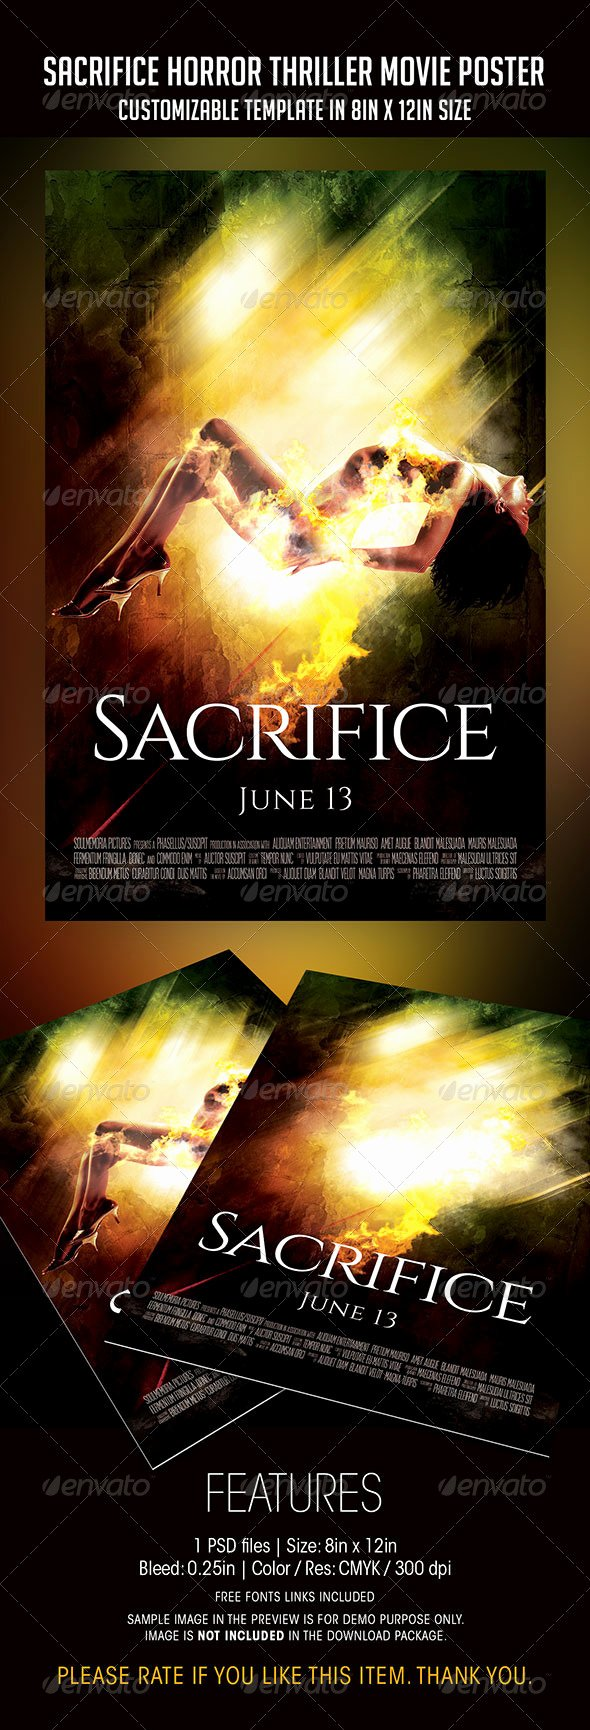 Horror Movie Poster Template New Sacrifice Horror Thriller Movie Poster